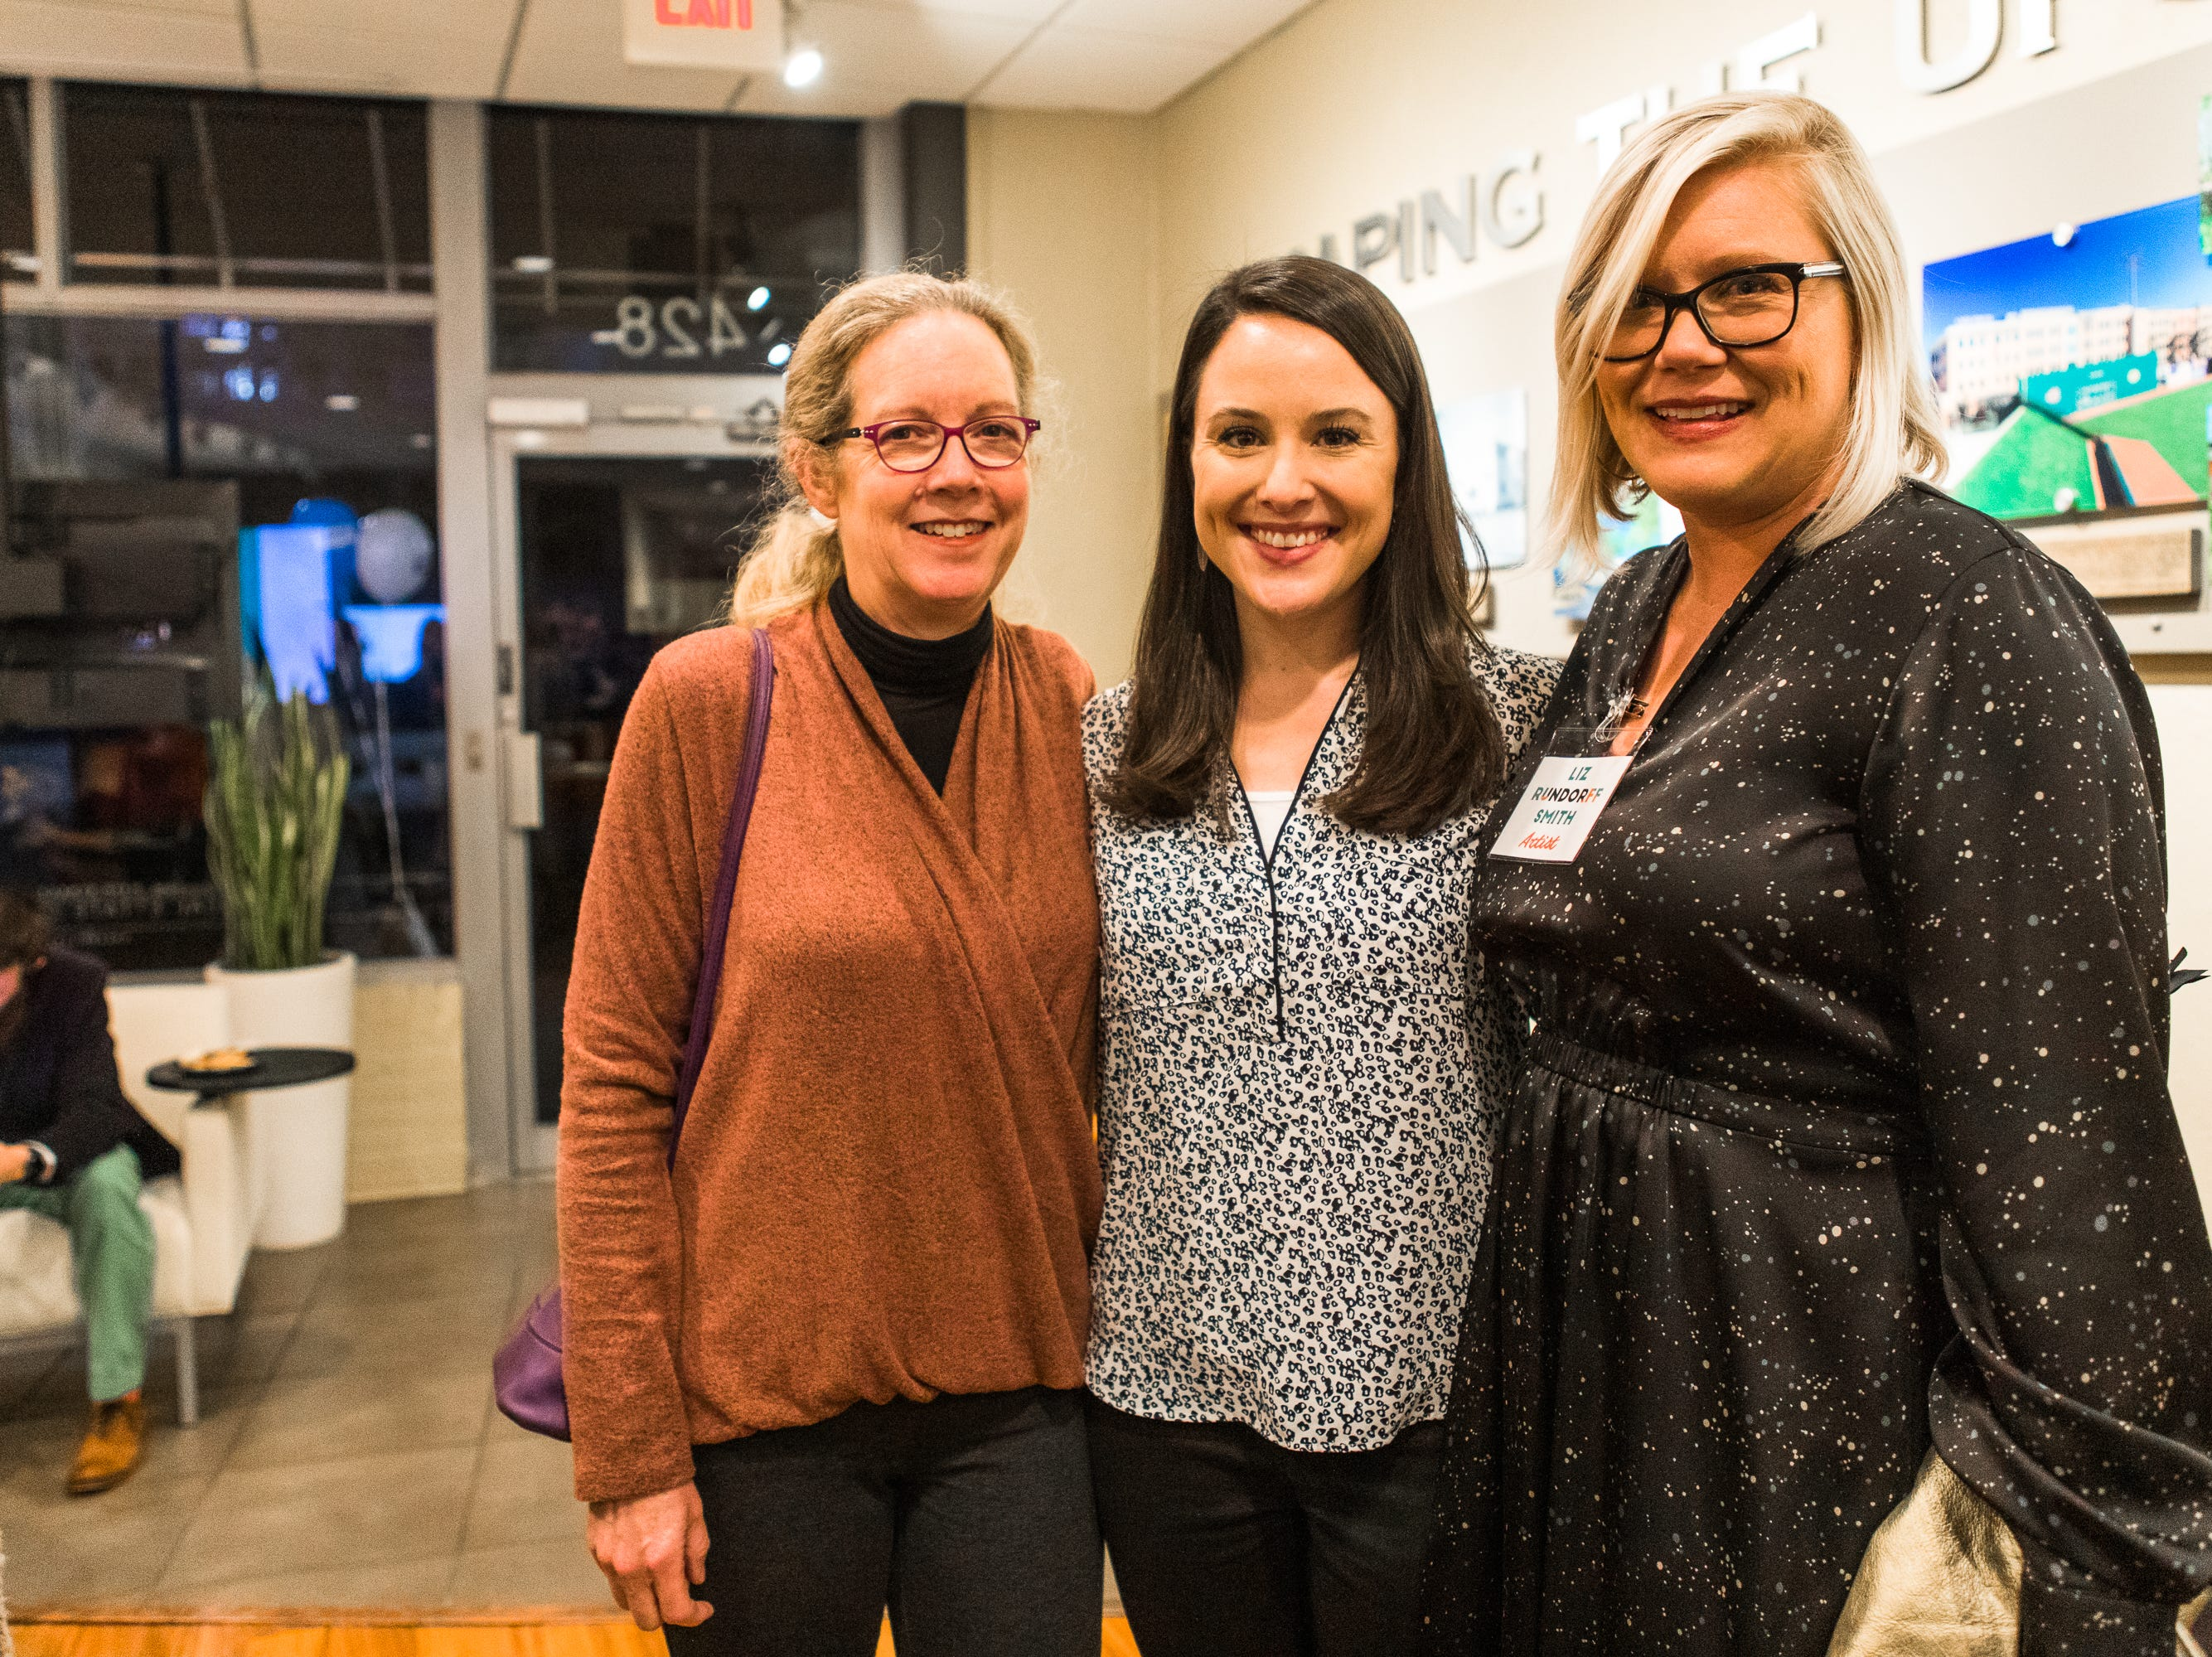 Coldwell Banker Caine hosted an exhibit opening for its next resident artist, Liz Rundorff Smith. The event was held at the Main Street Real Estate Gallery and guests were invited to view Smith's creative work and enjoy refreshments. The featured artist currently serves as Art School Director for the Greenville Center for Creative Arts while continuing to exhibit her work across the nation.